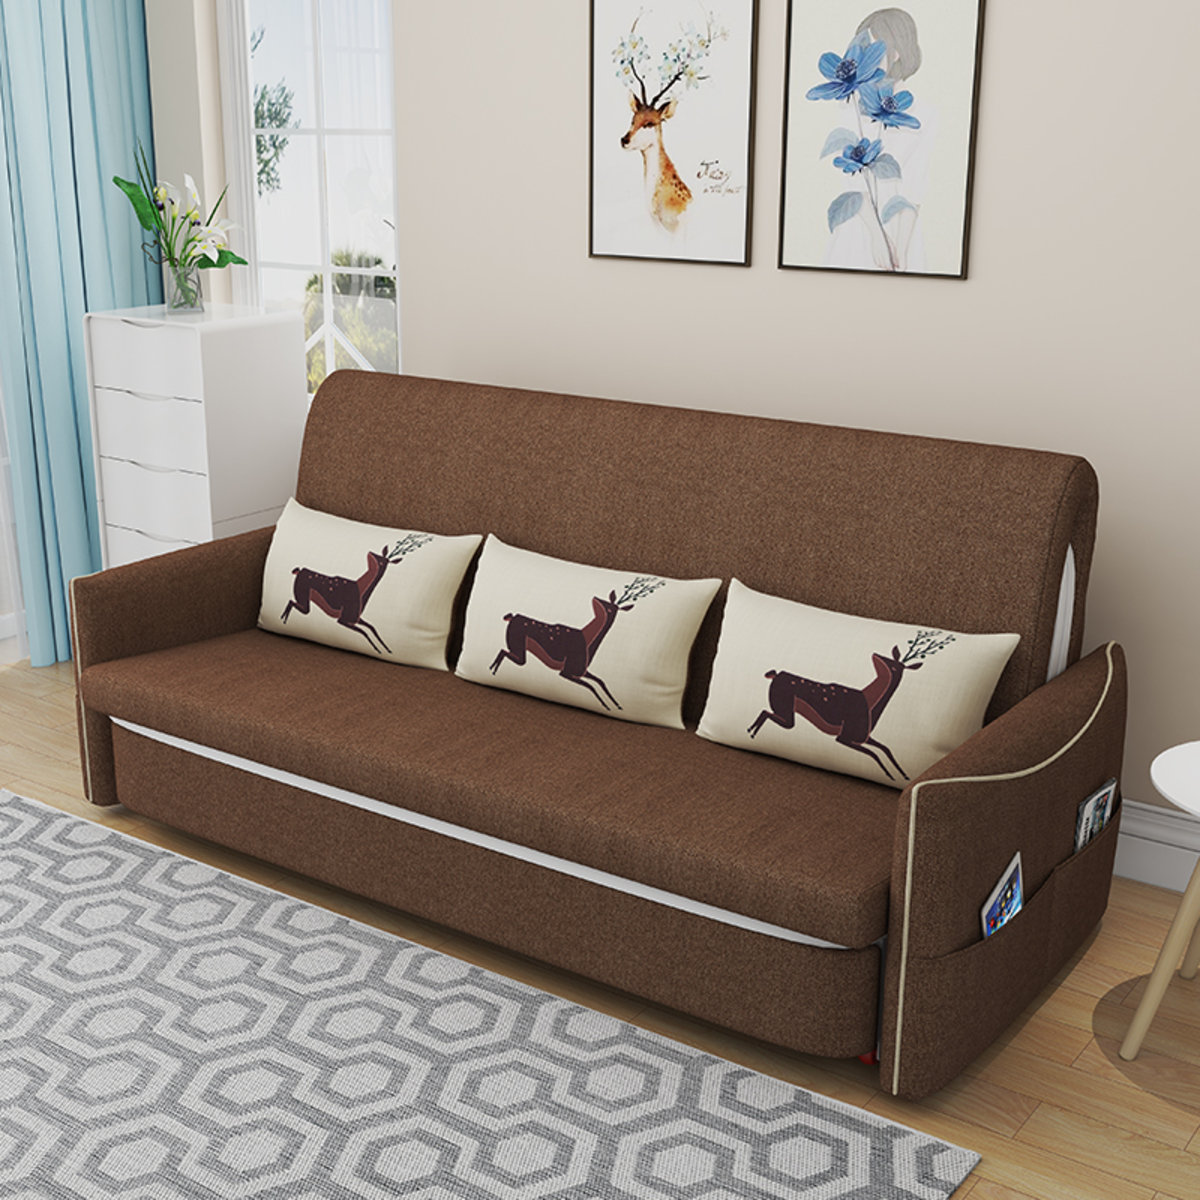 Multi-functional Fabric sofa bed1.4 m MR-868F Brown